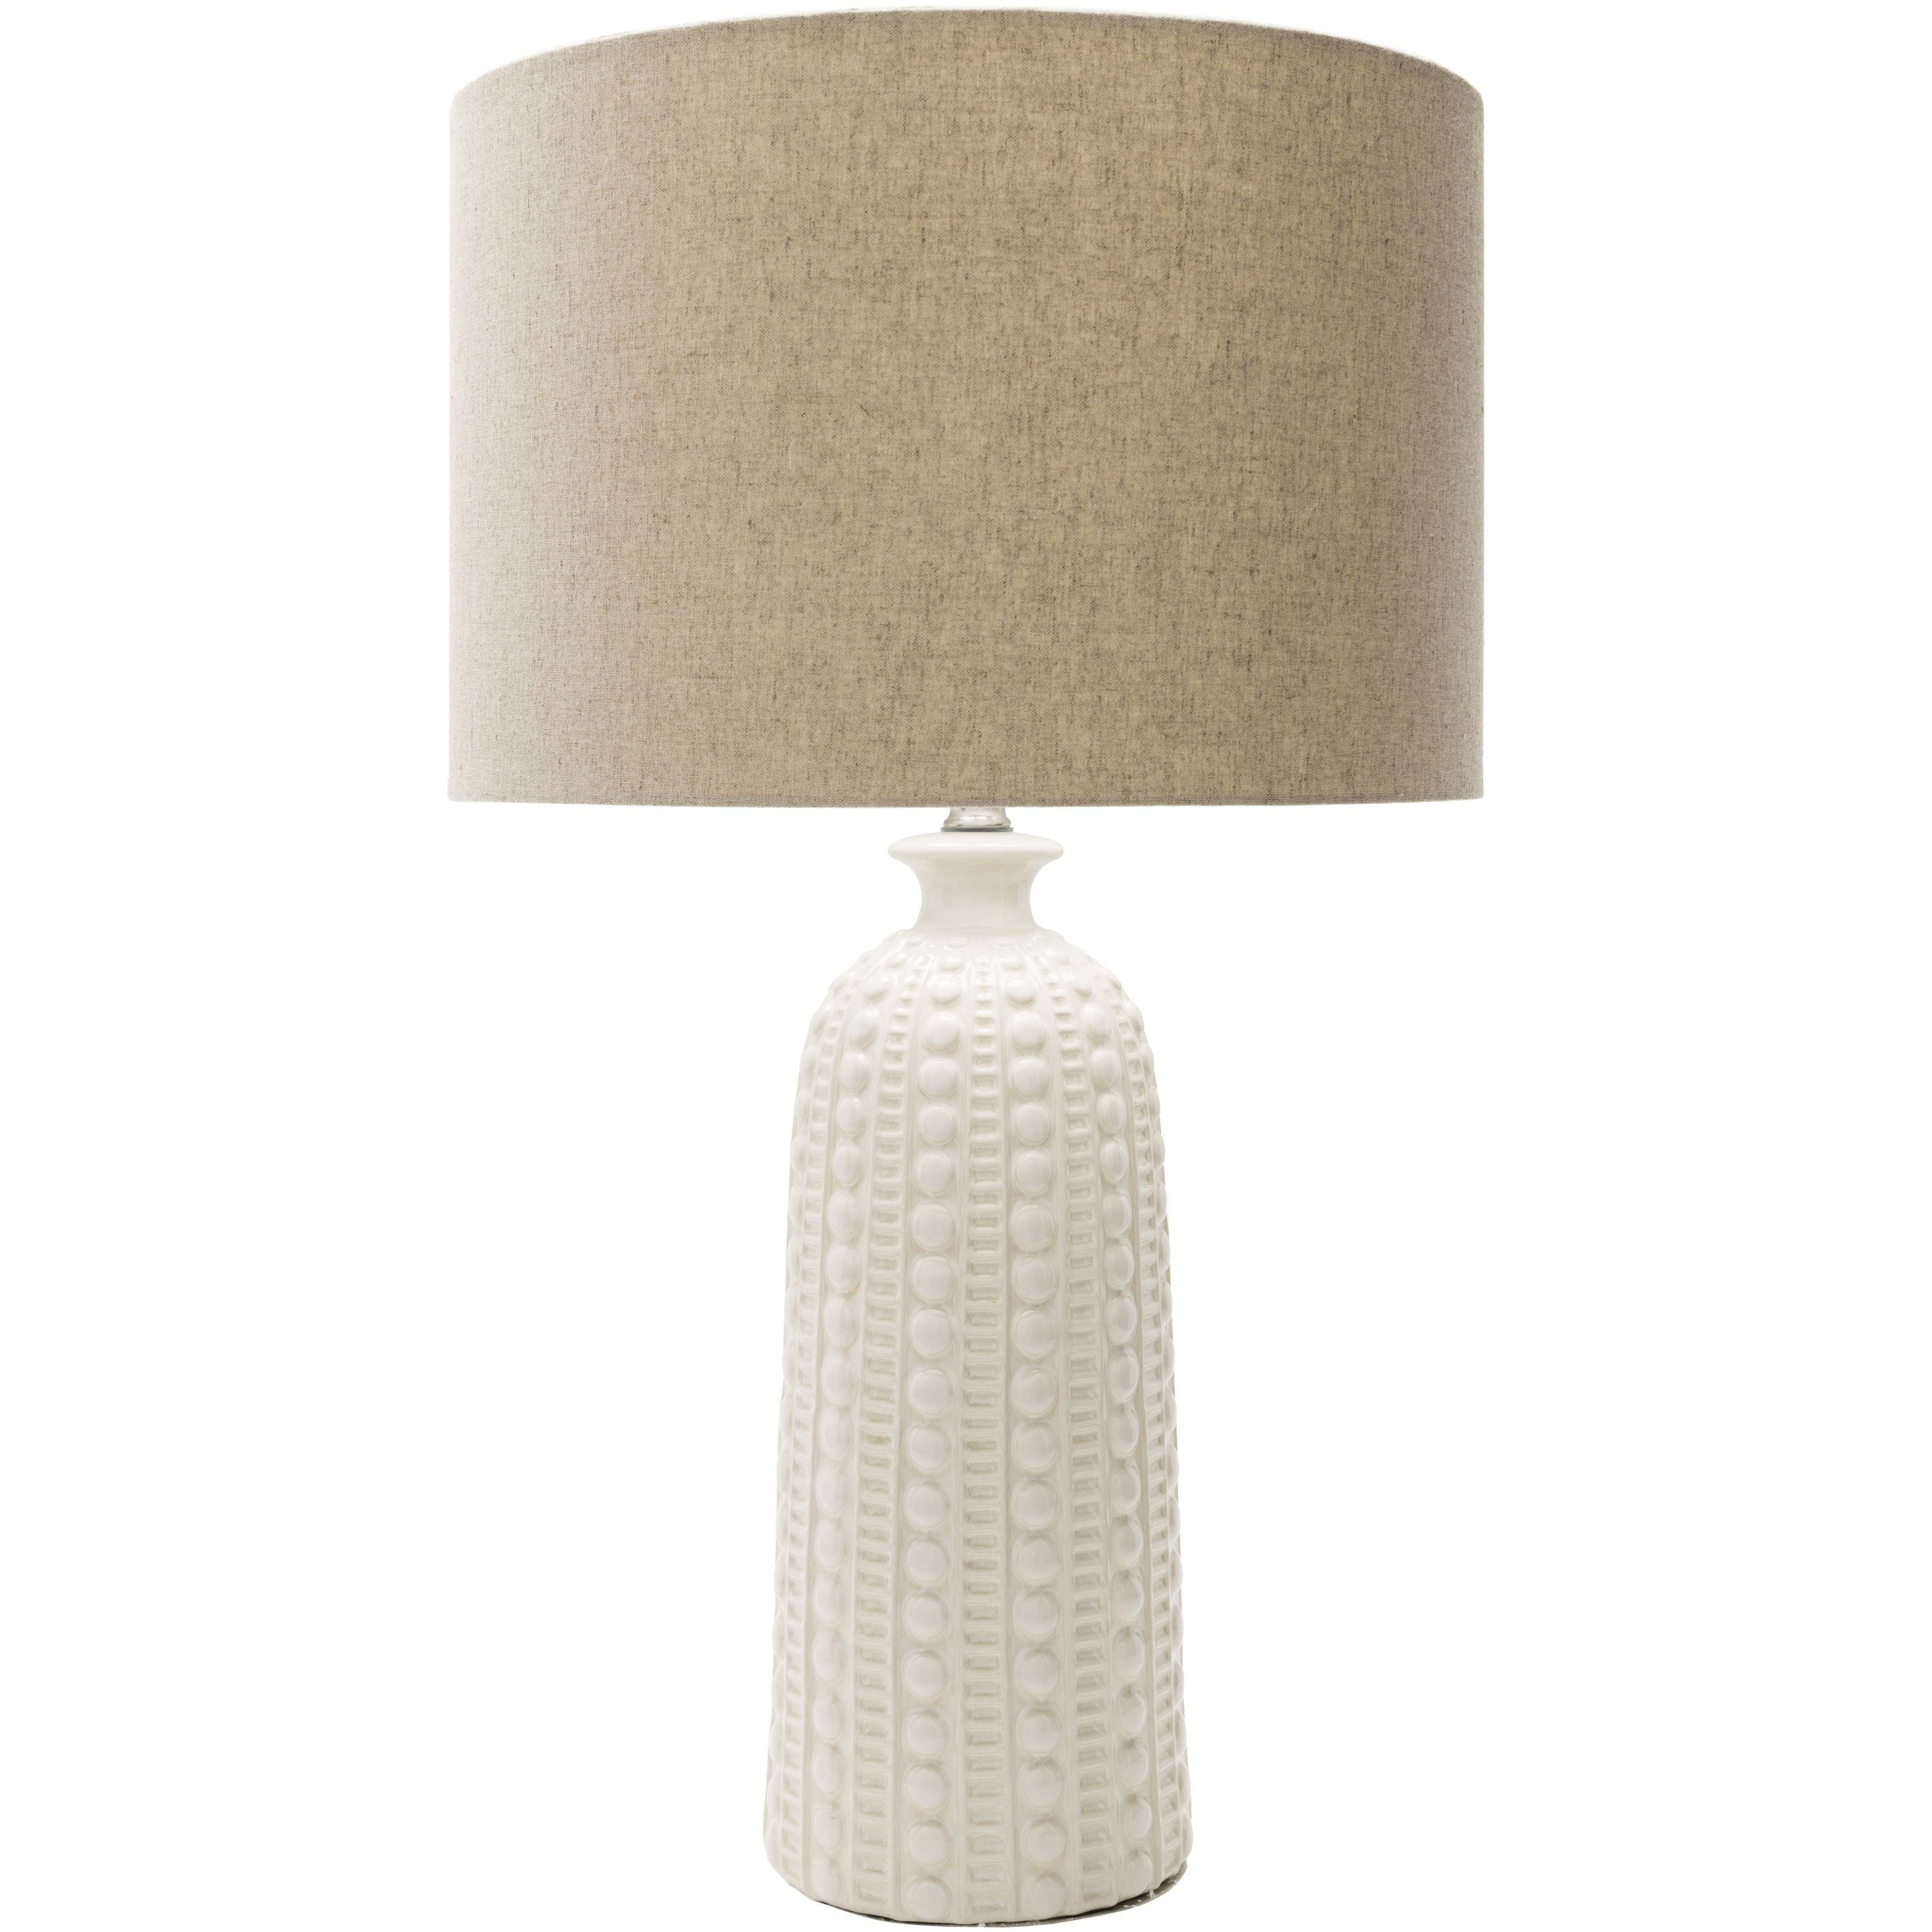 Cabot Table Lamp White With Images Table Lamp White Table